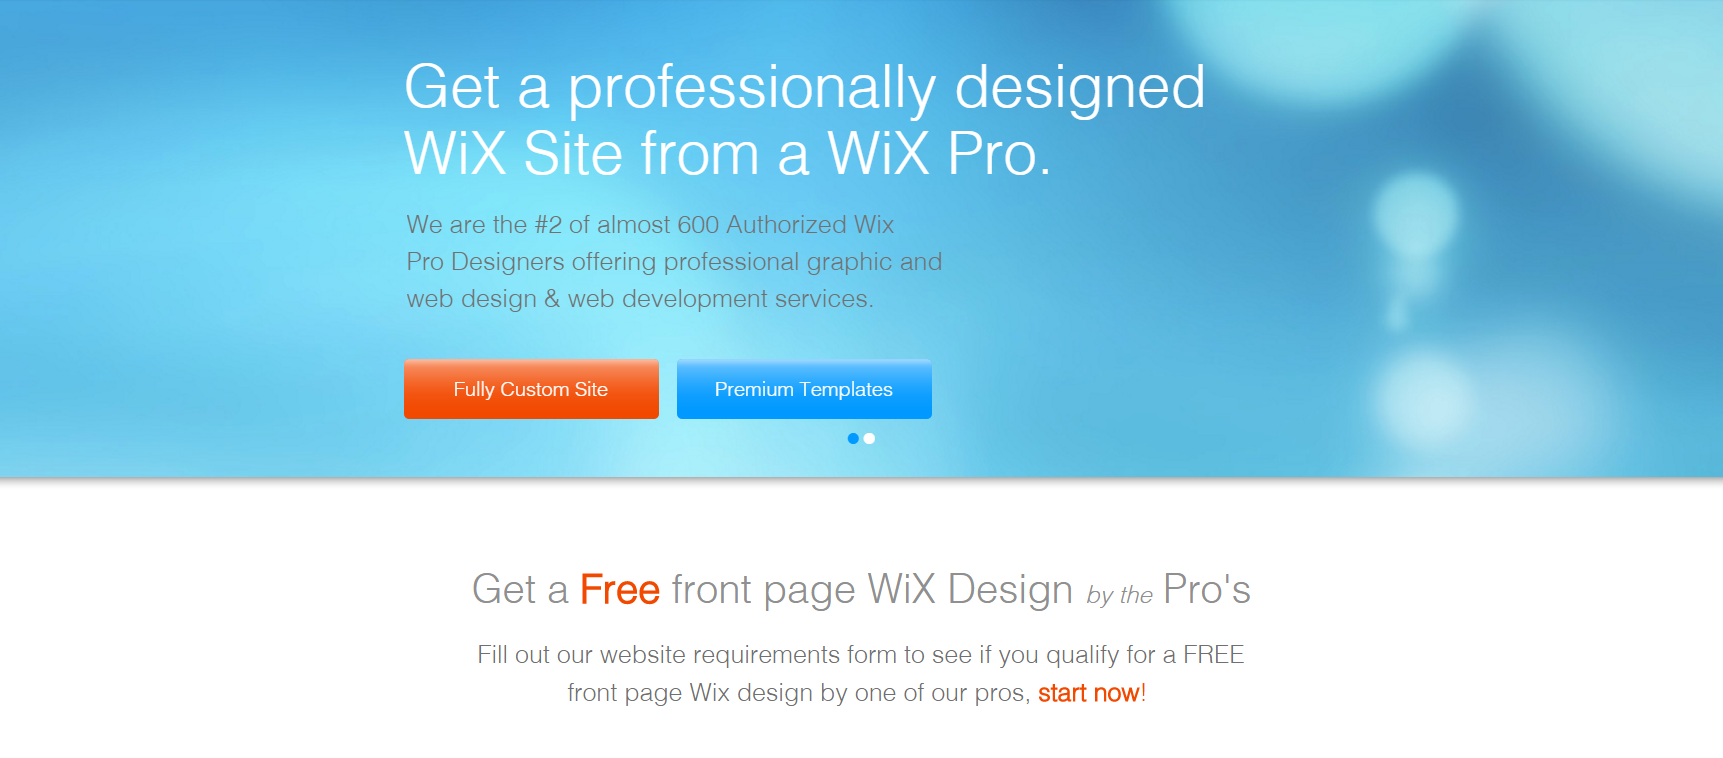 Wix Pro Designers Get A Professional Front Page Design For Free